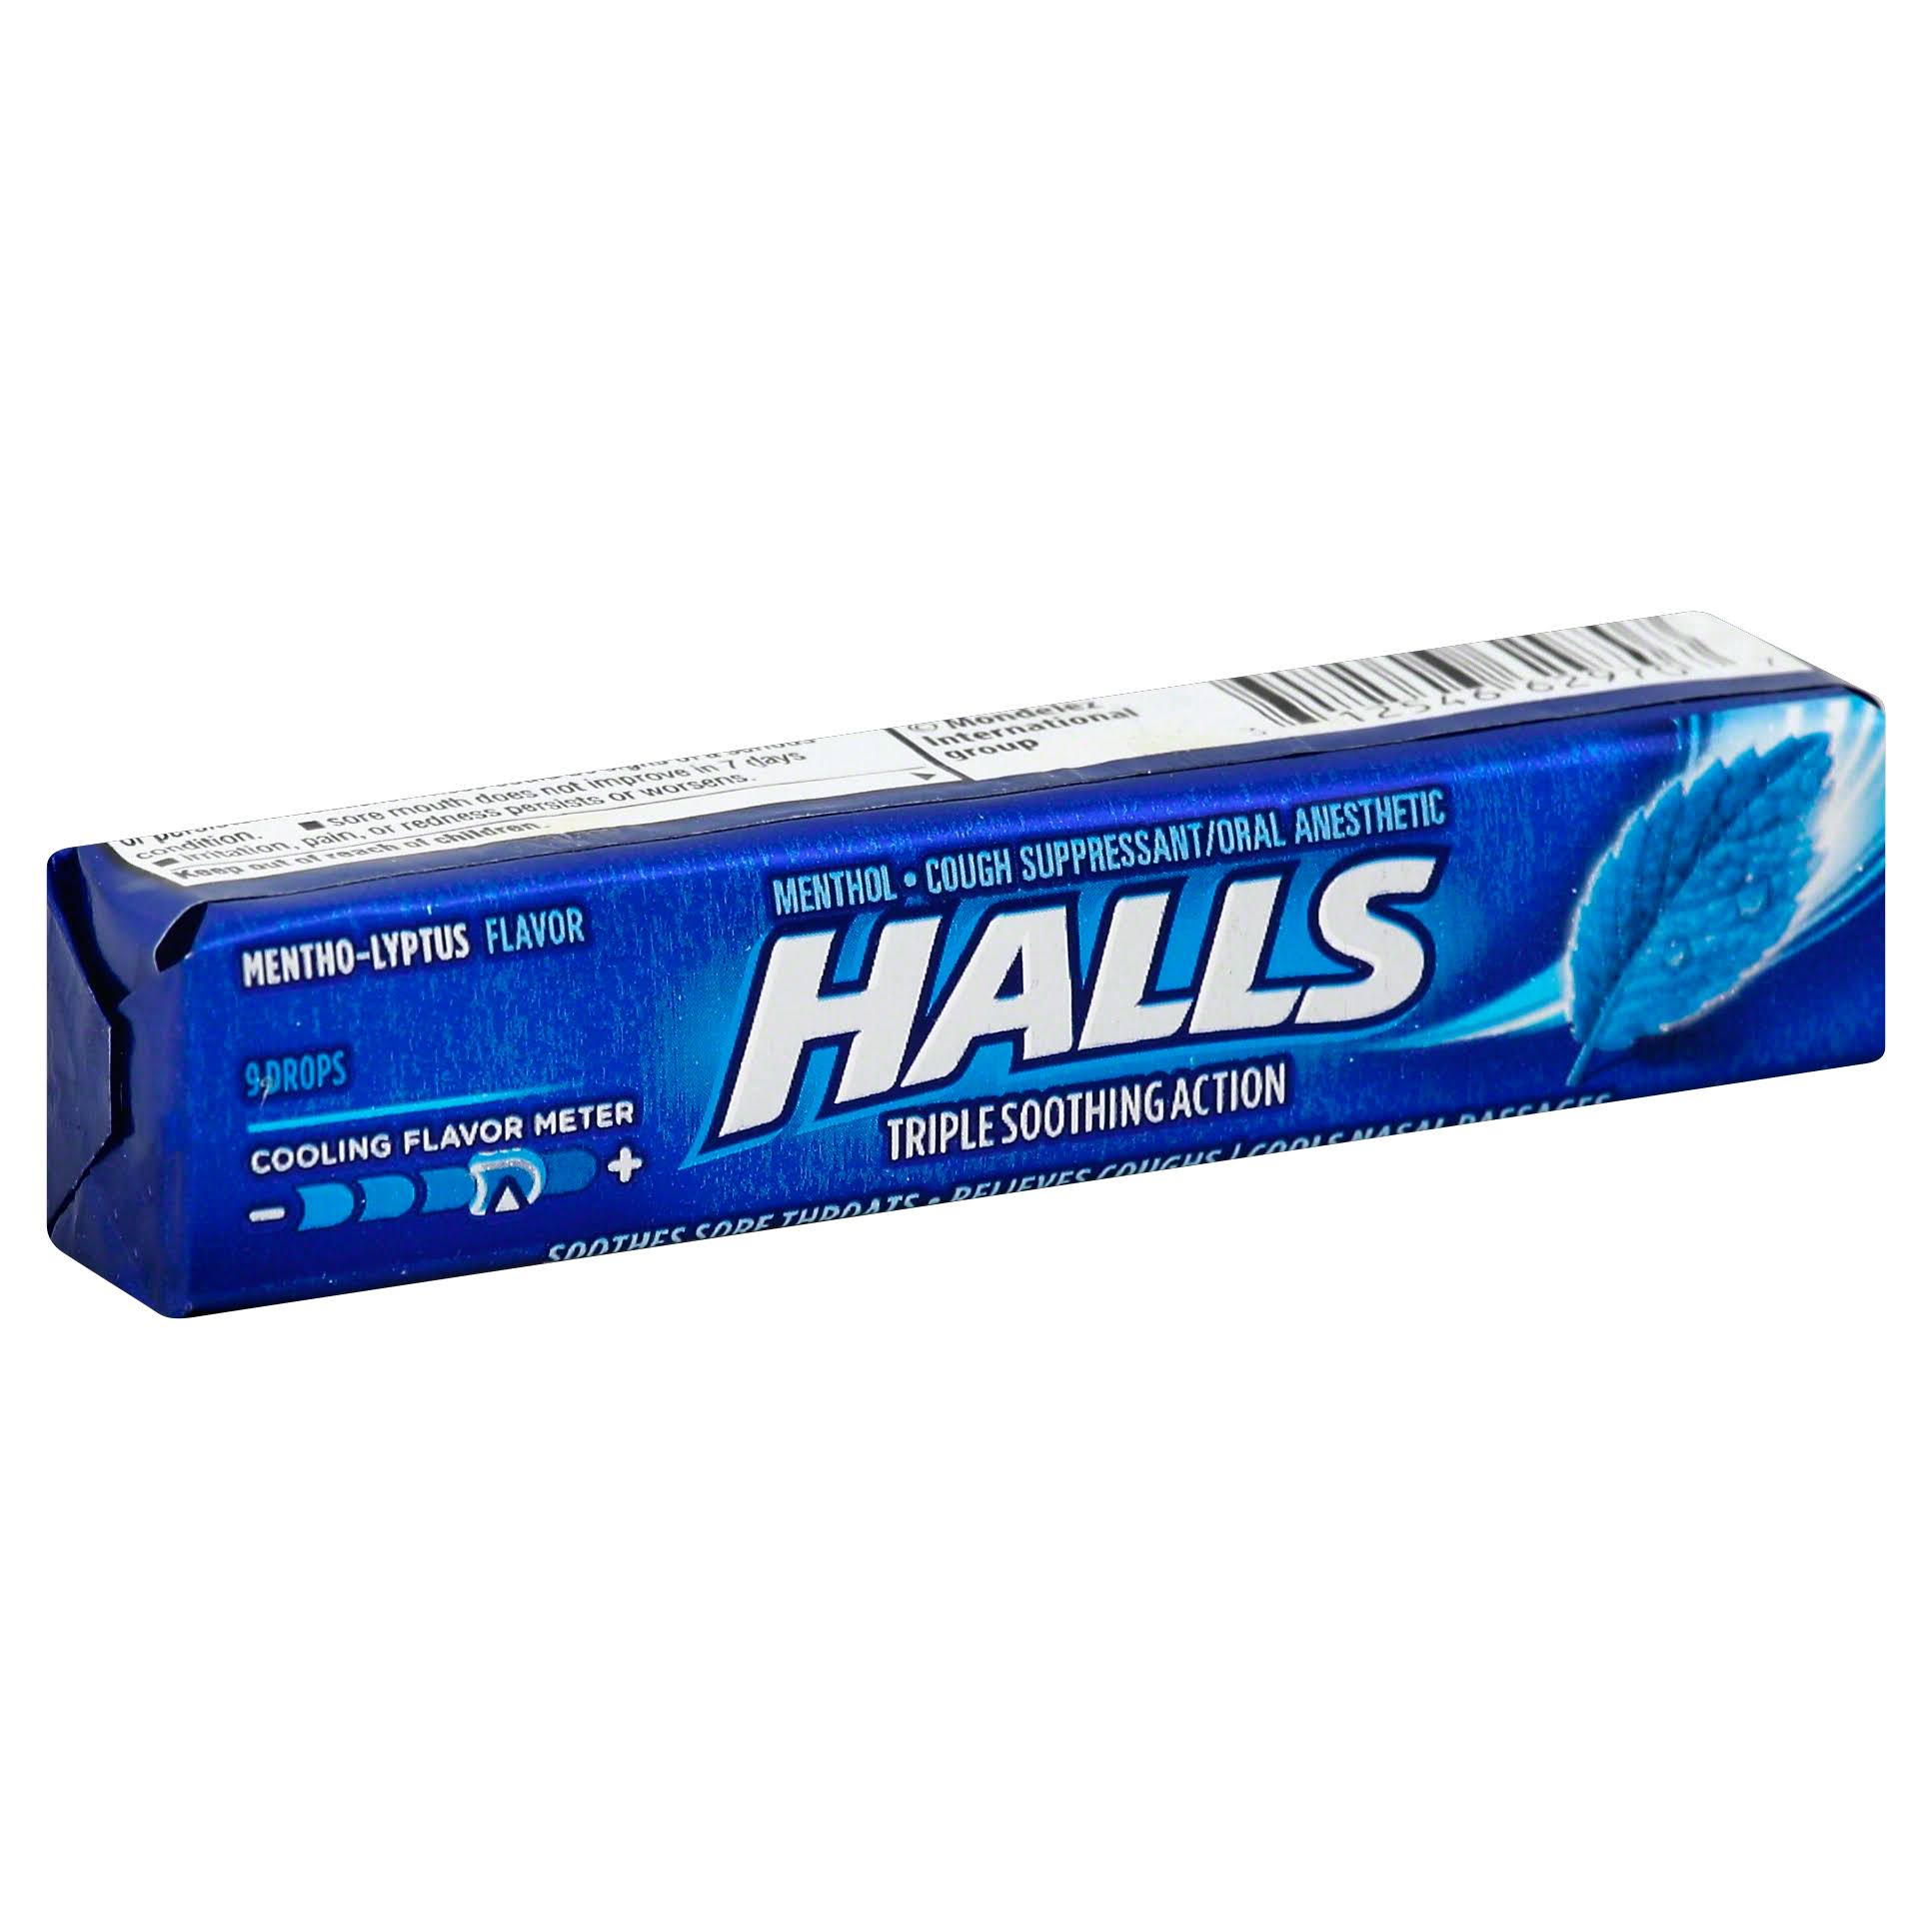 Halls Cough Suppressant/Oral Anesthetic, Menthol, Mentho-Lyptus - 9 drops